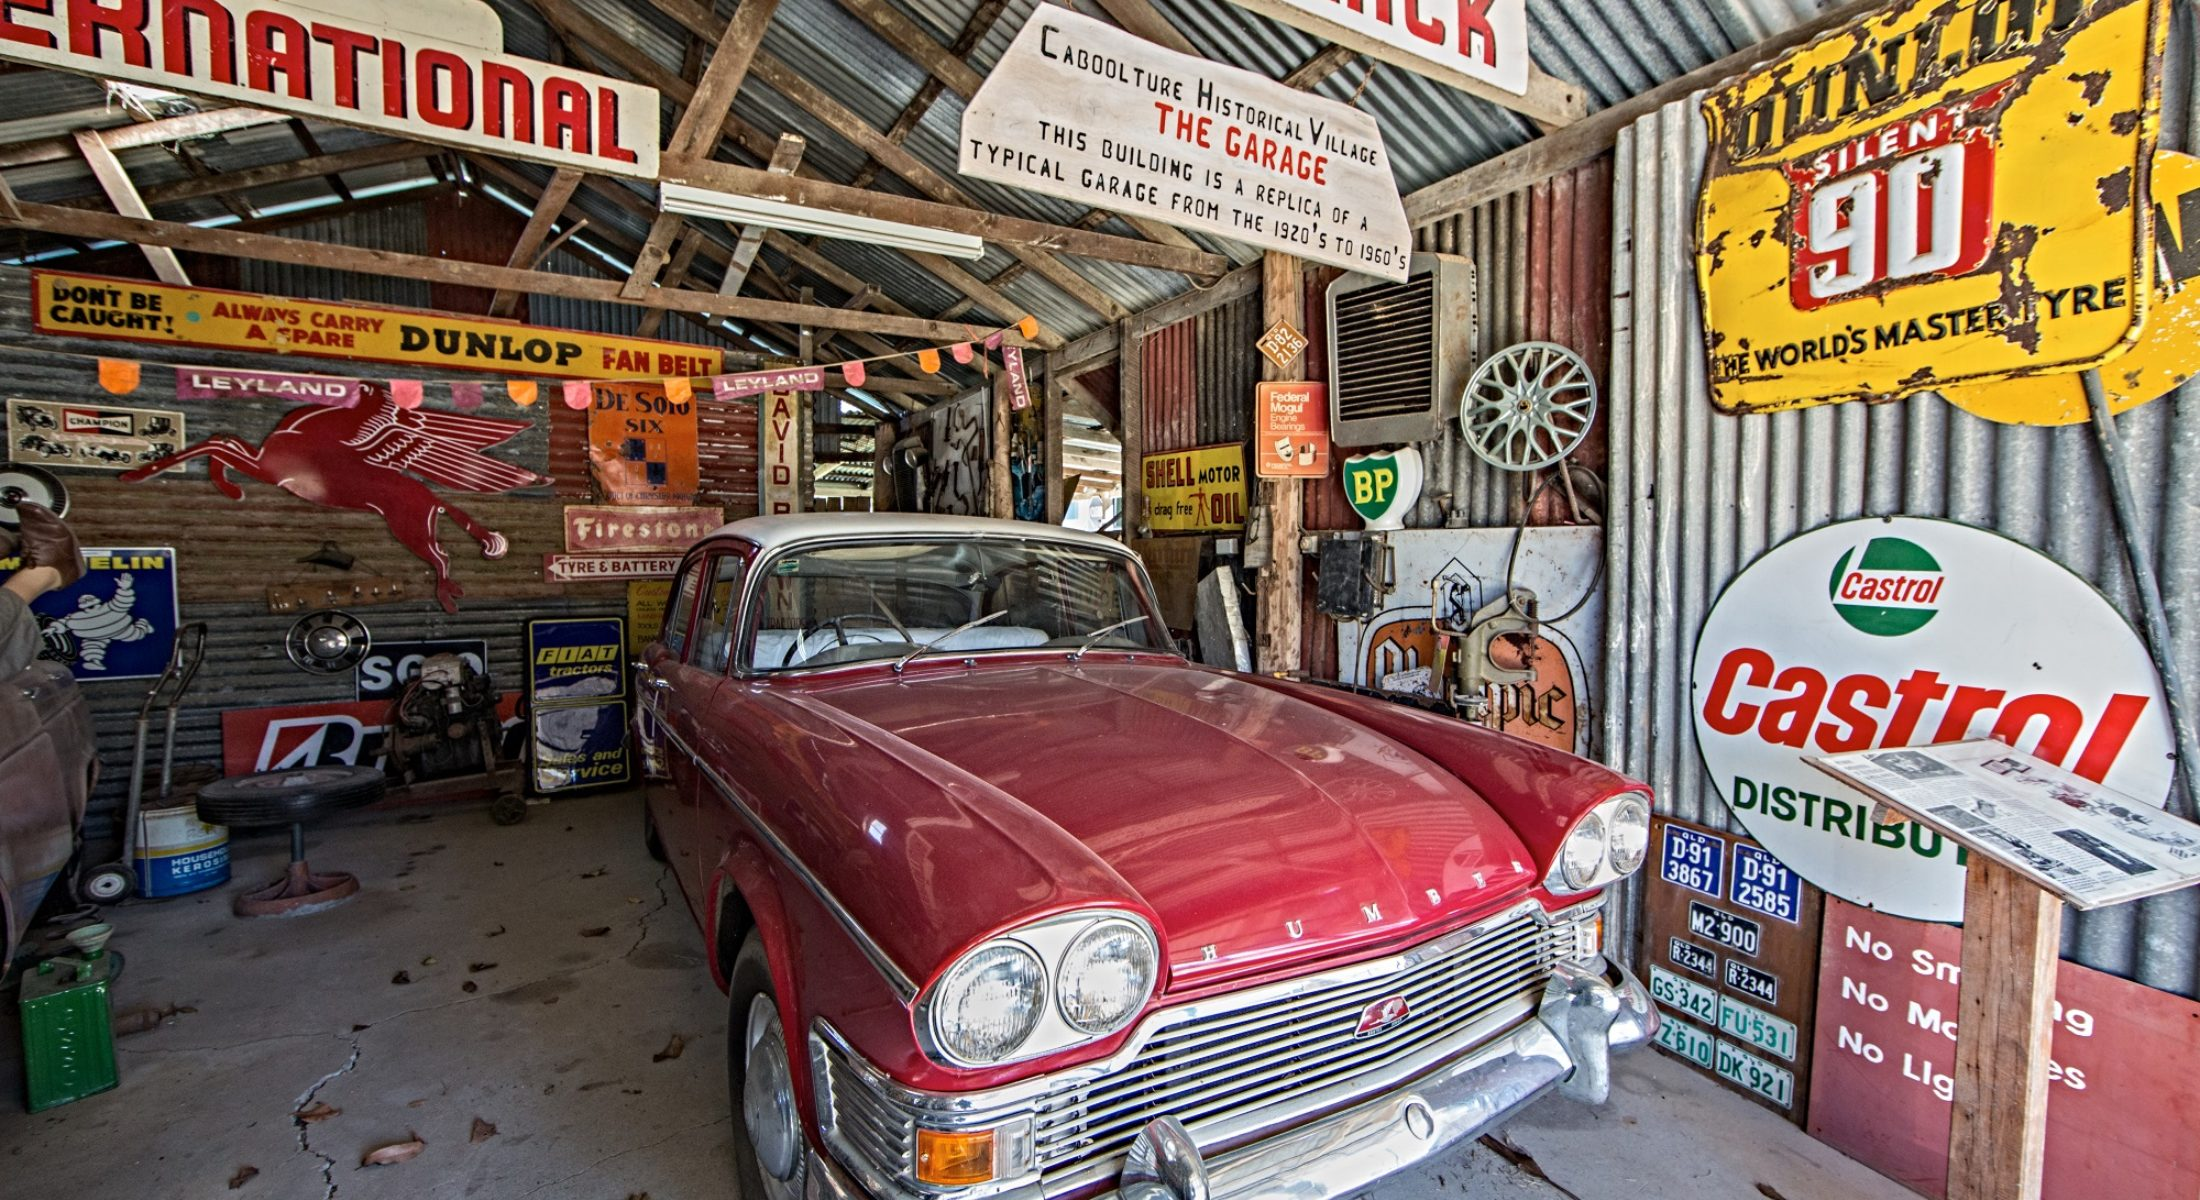 Caboolture Historical Village Cars Garage Moreton Bay Region